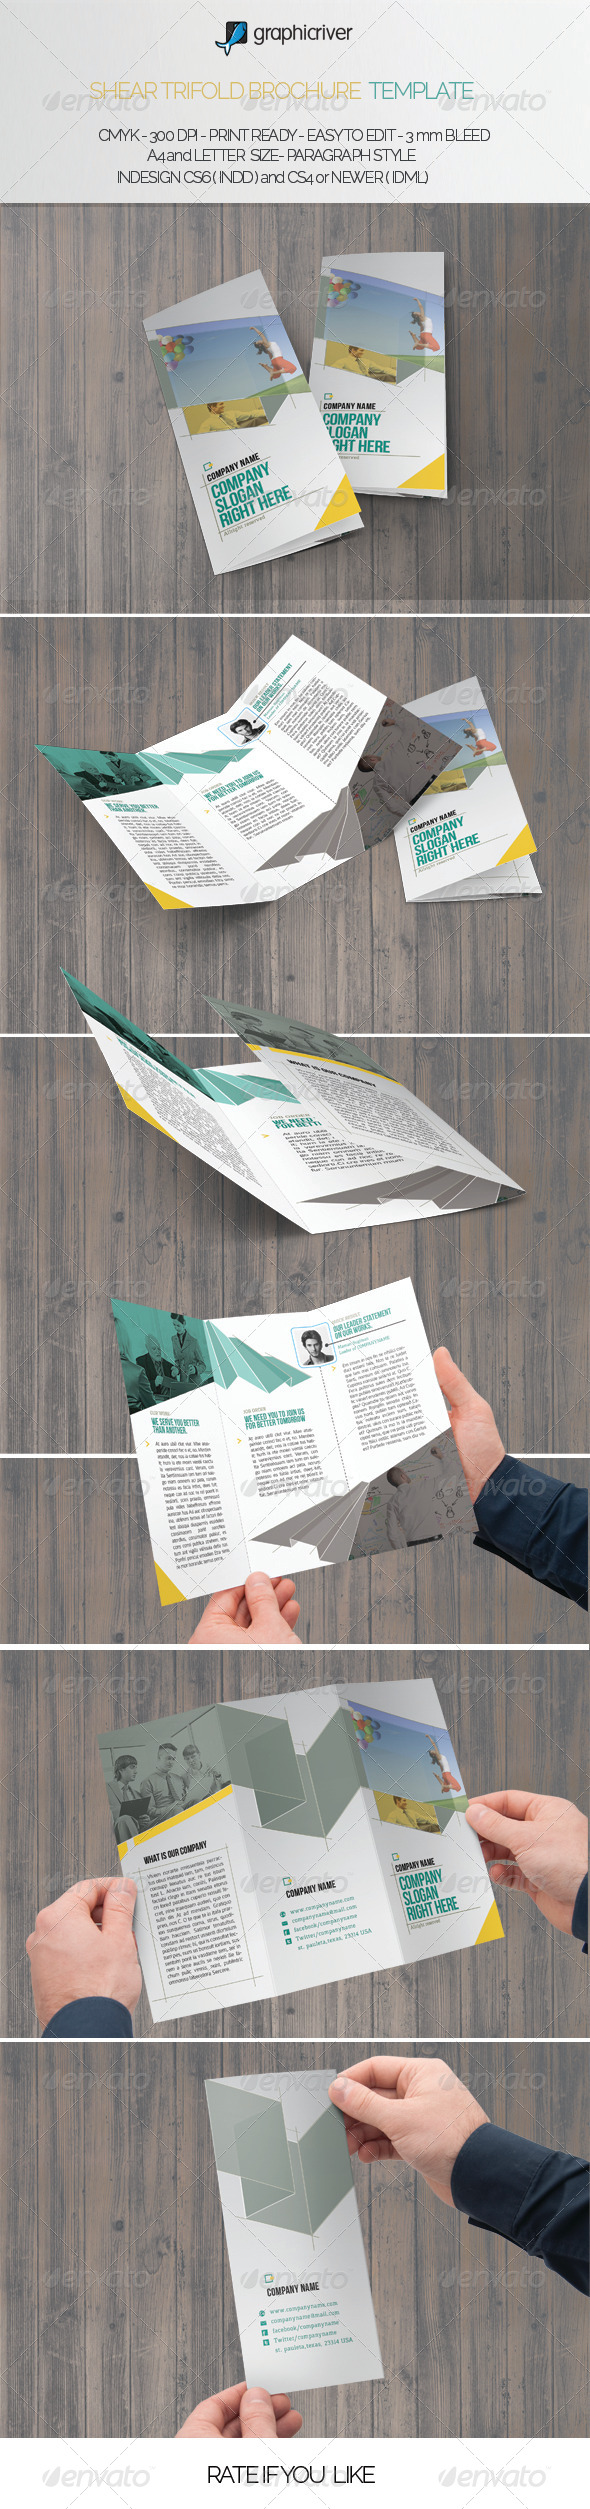 Shear Trifold Brochure Template - Brochures Print Templates